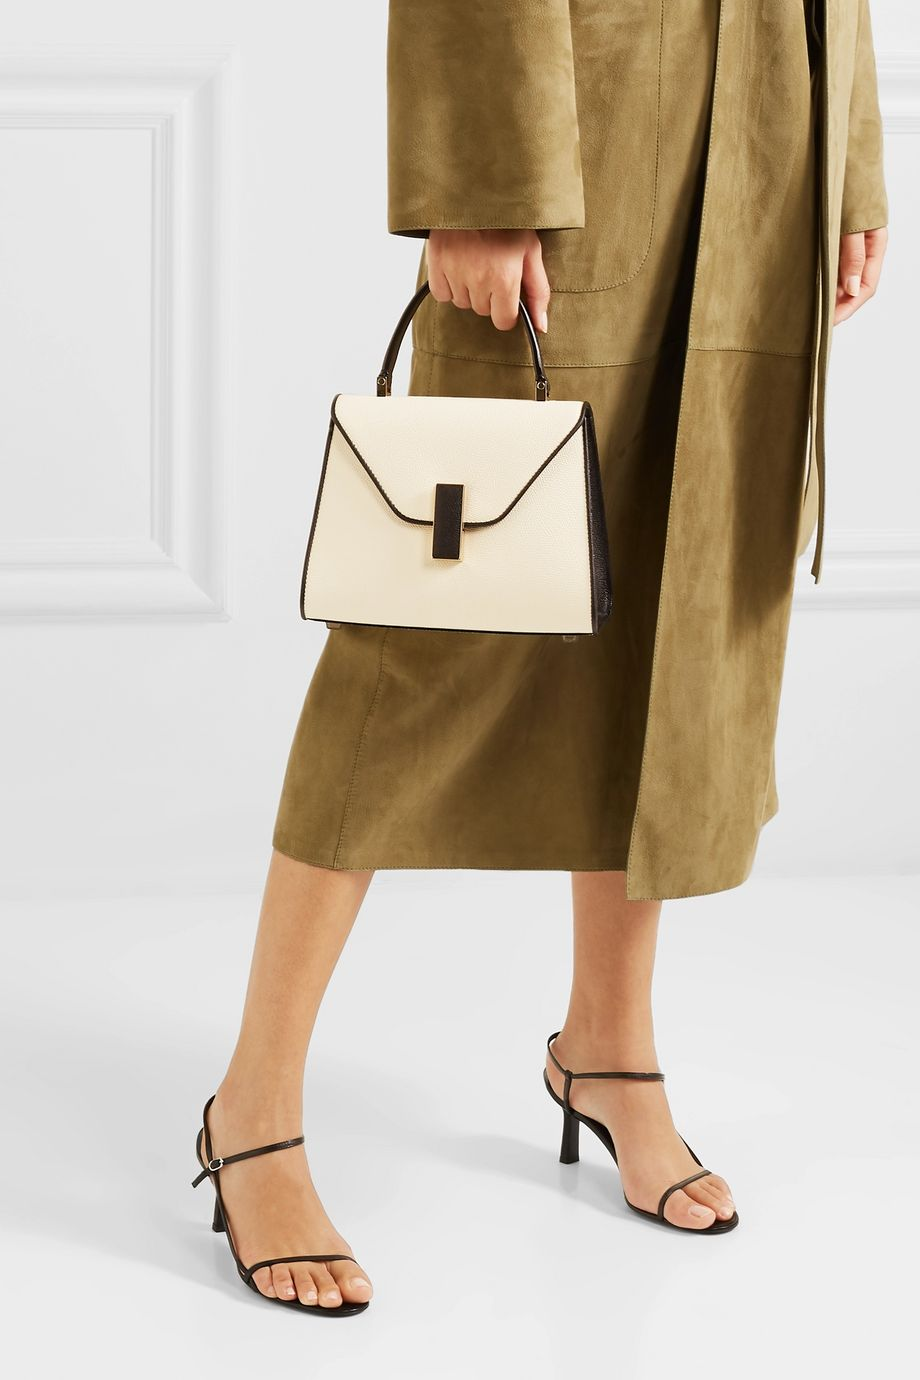 Valextra Iside mini two-tone textured-leather shoulder bag